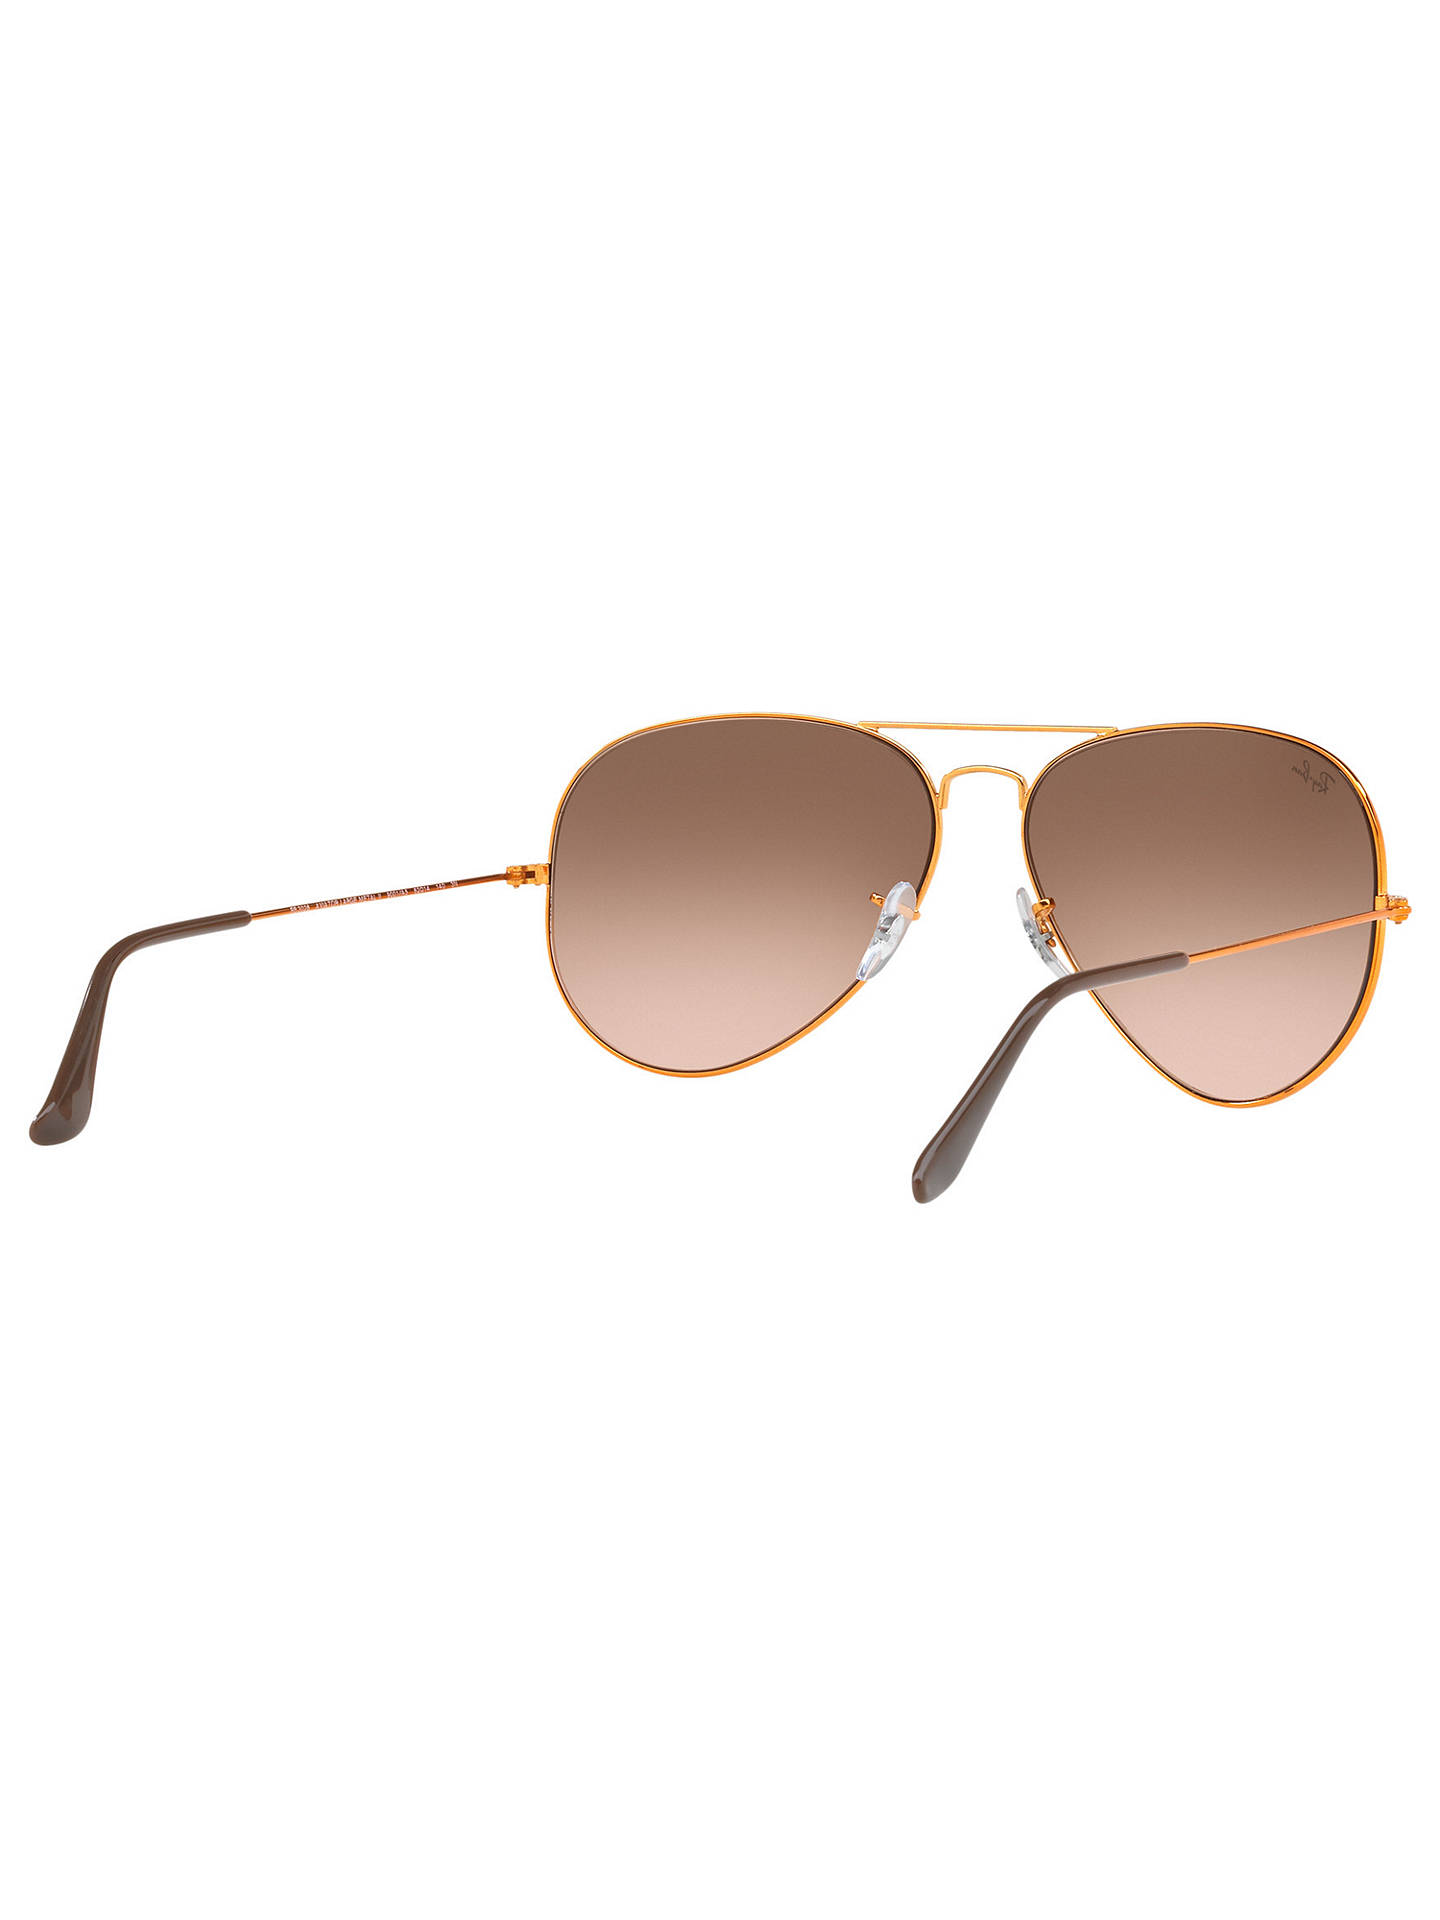 Buy Ray-Ban RB3026 Men's Large Aviator Sunglasses, Gold/Brown Gradient Online at johnlewis.com